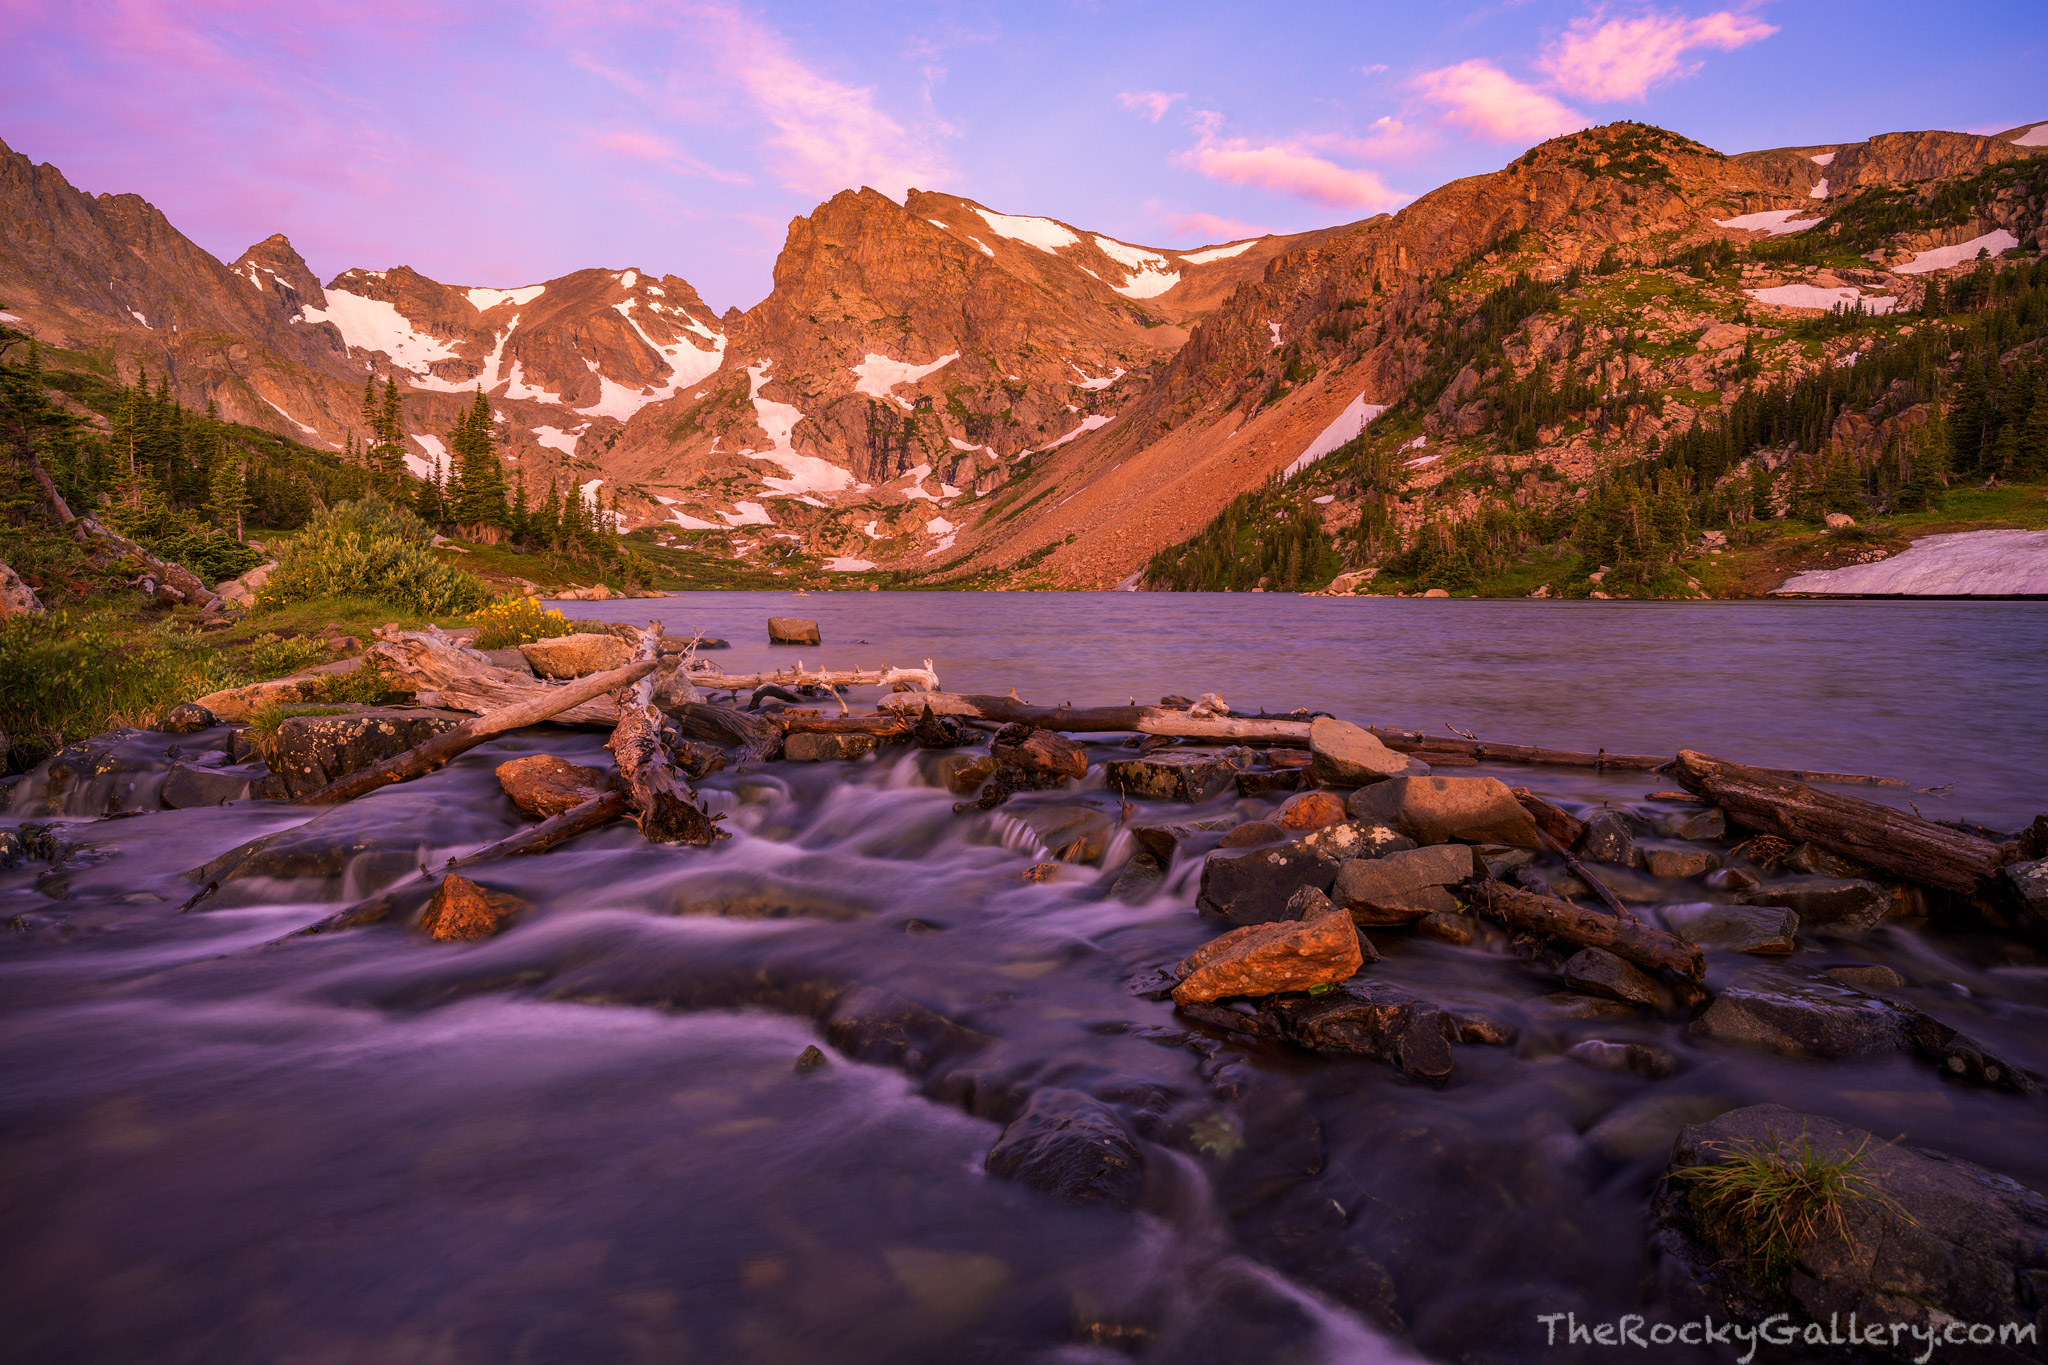 Brainard Lake,Lake Isabelle,Indian Peaks Wilderness Area,Colorado,Landscape,Photography,Sunrise,August,Boulder County,National Forest,Ward,Nederland,Shoshone Peak, photo